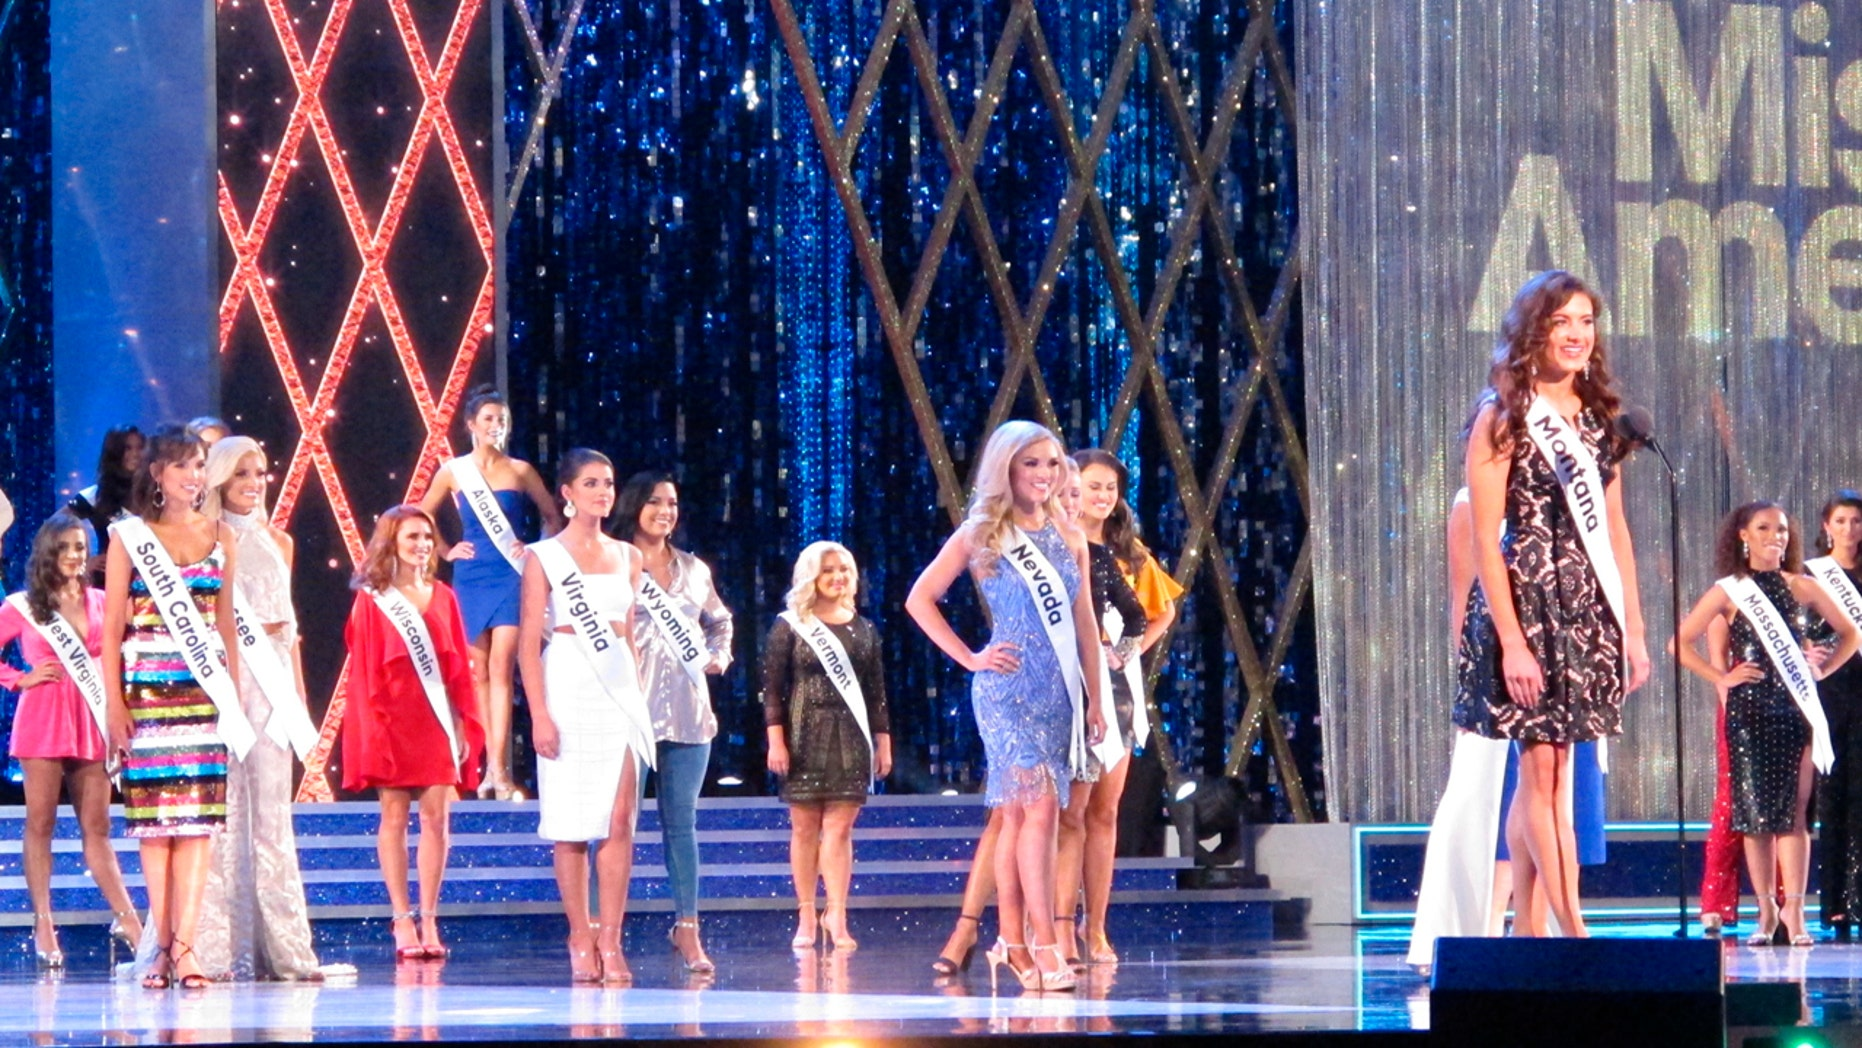 Laura Lynn Haller, Miss Montana, introduces herself at the start of preliminary competition in the Miss America pagaent, Sept. 5, 2018, in Atlantic City, N.J.